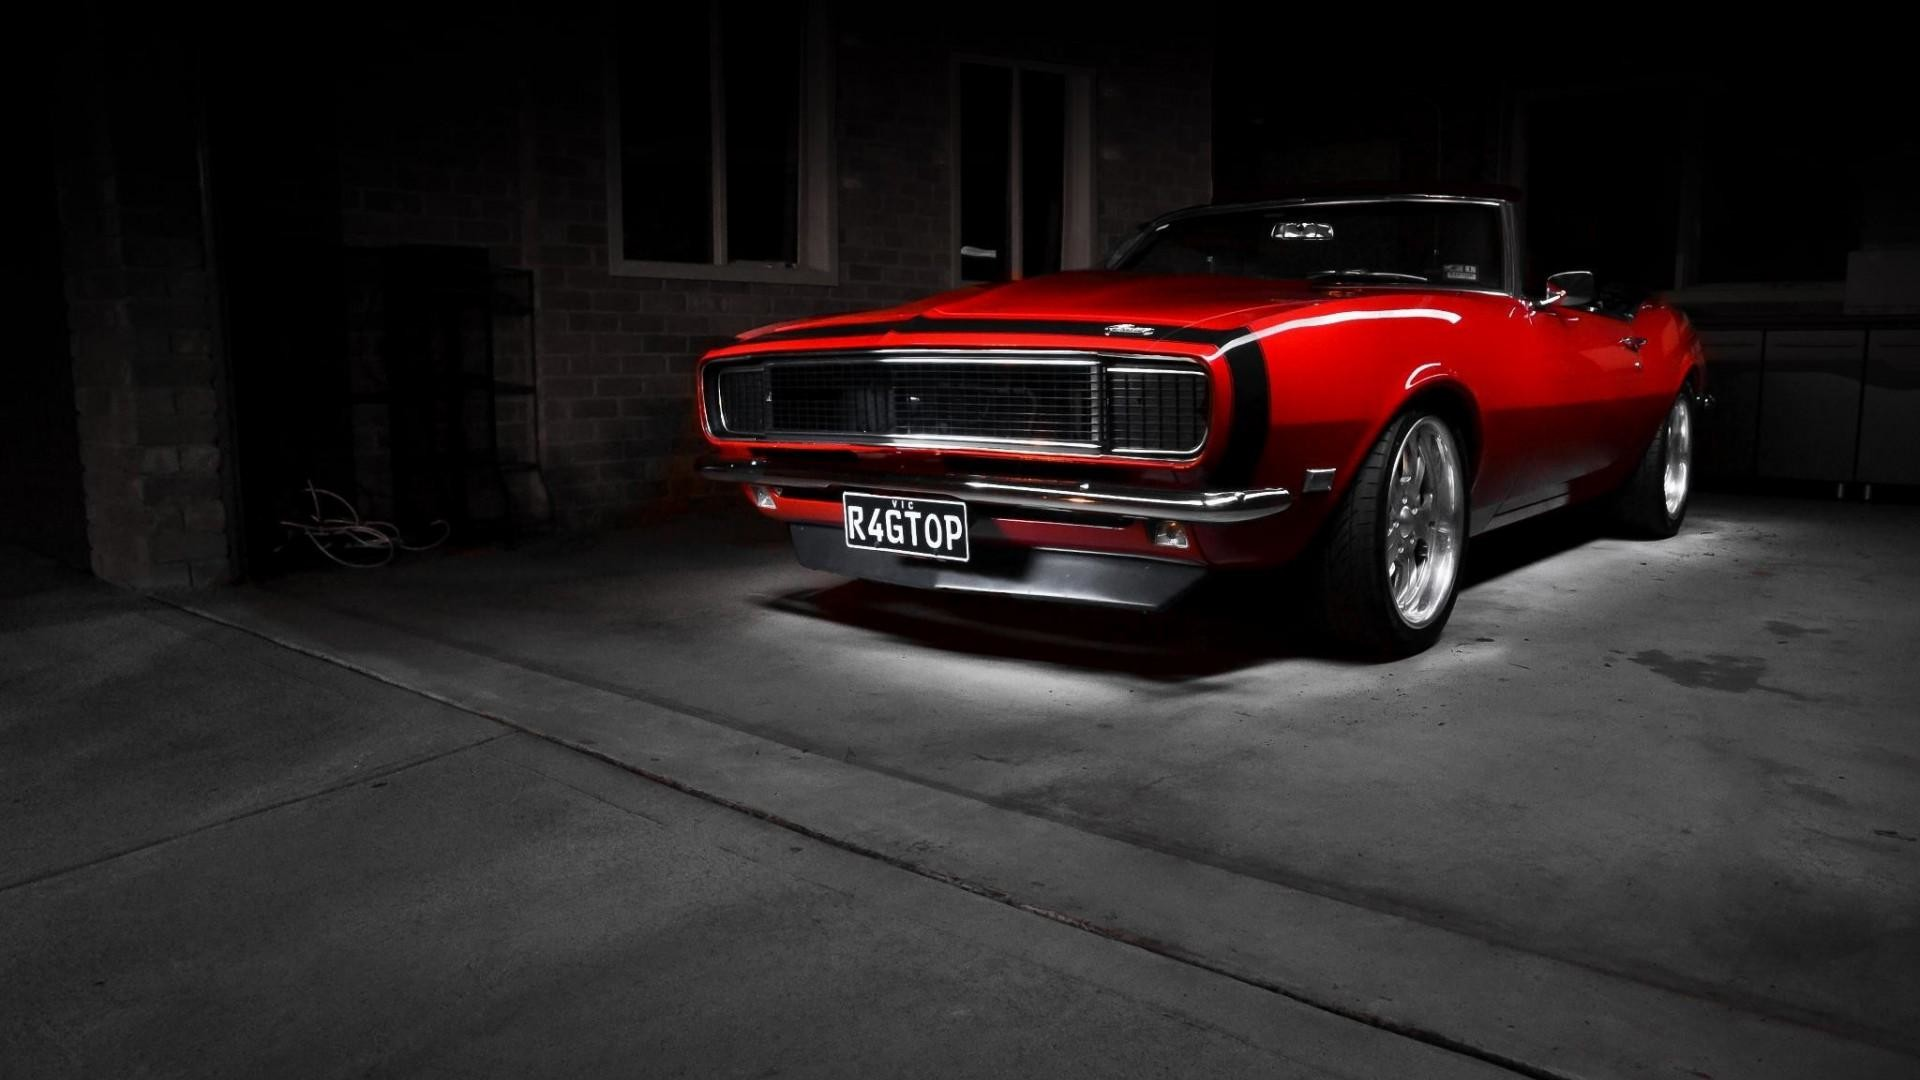 1920x1080 ... American Muscle Cars Wallpaper - WallpaperSafari